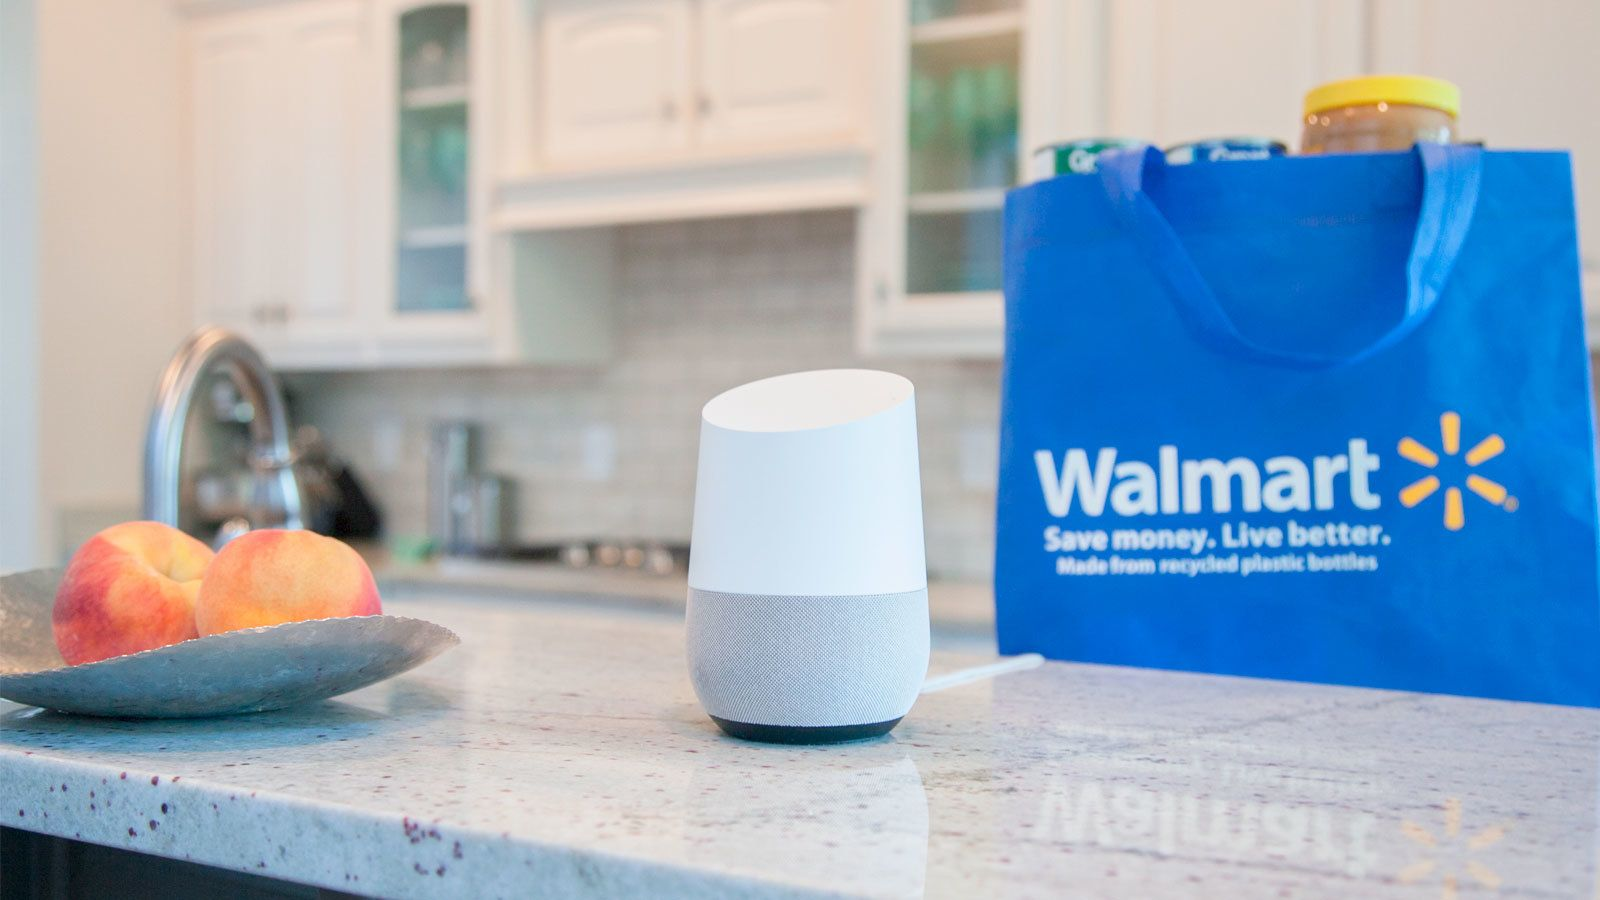 Wal-Mart, Google Partner On Voice-Based Shopping